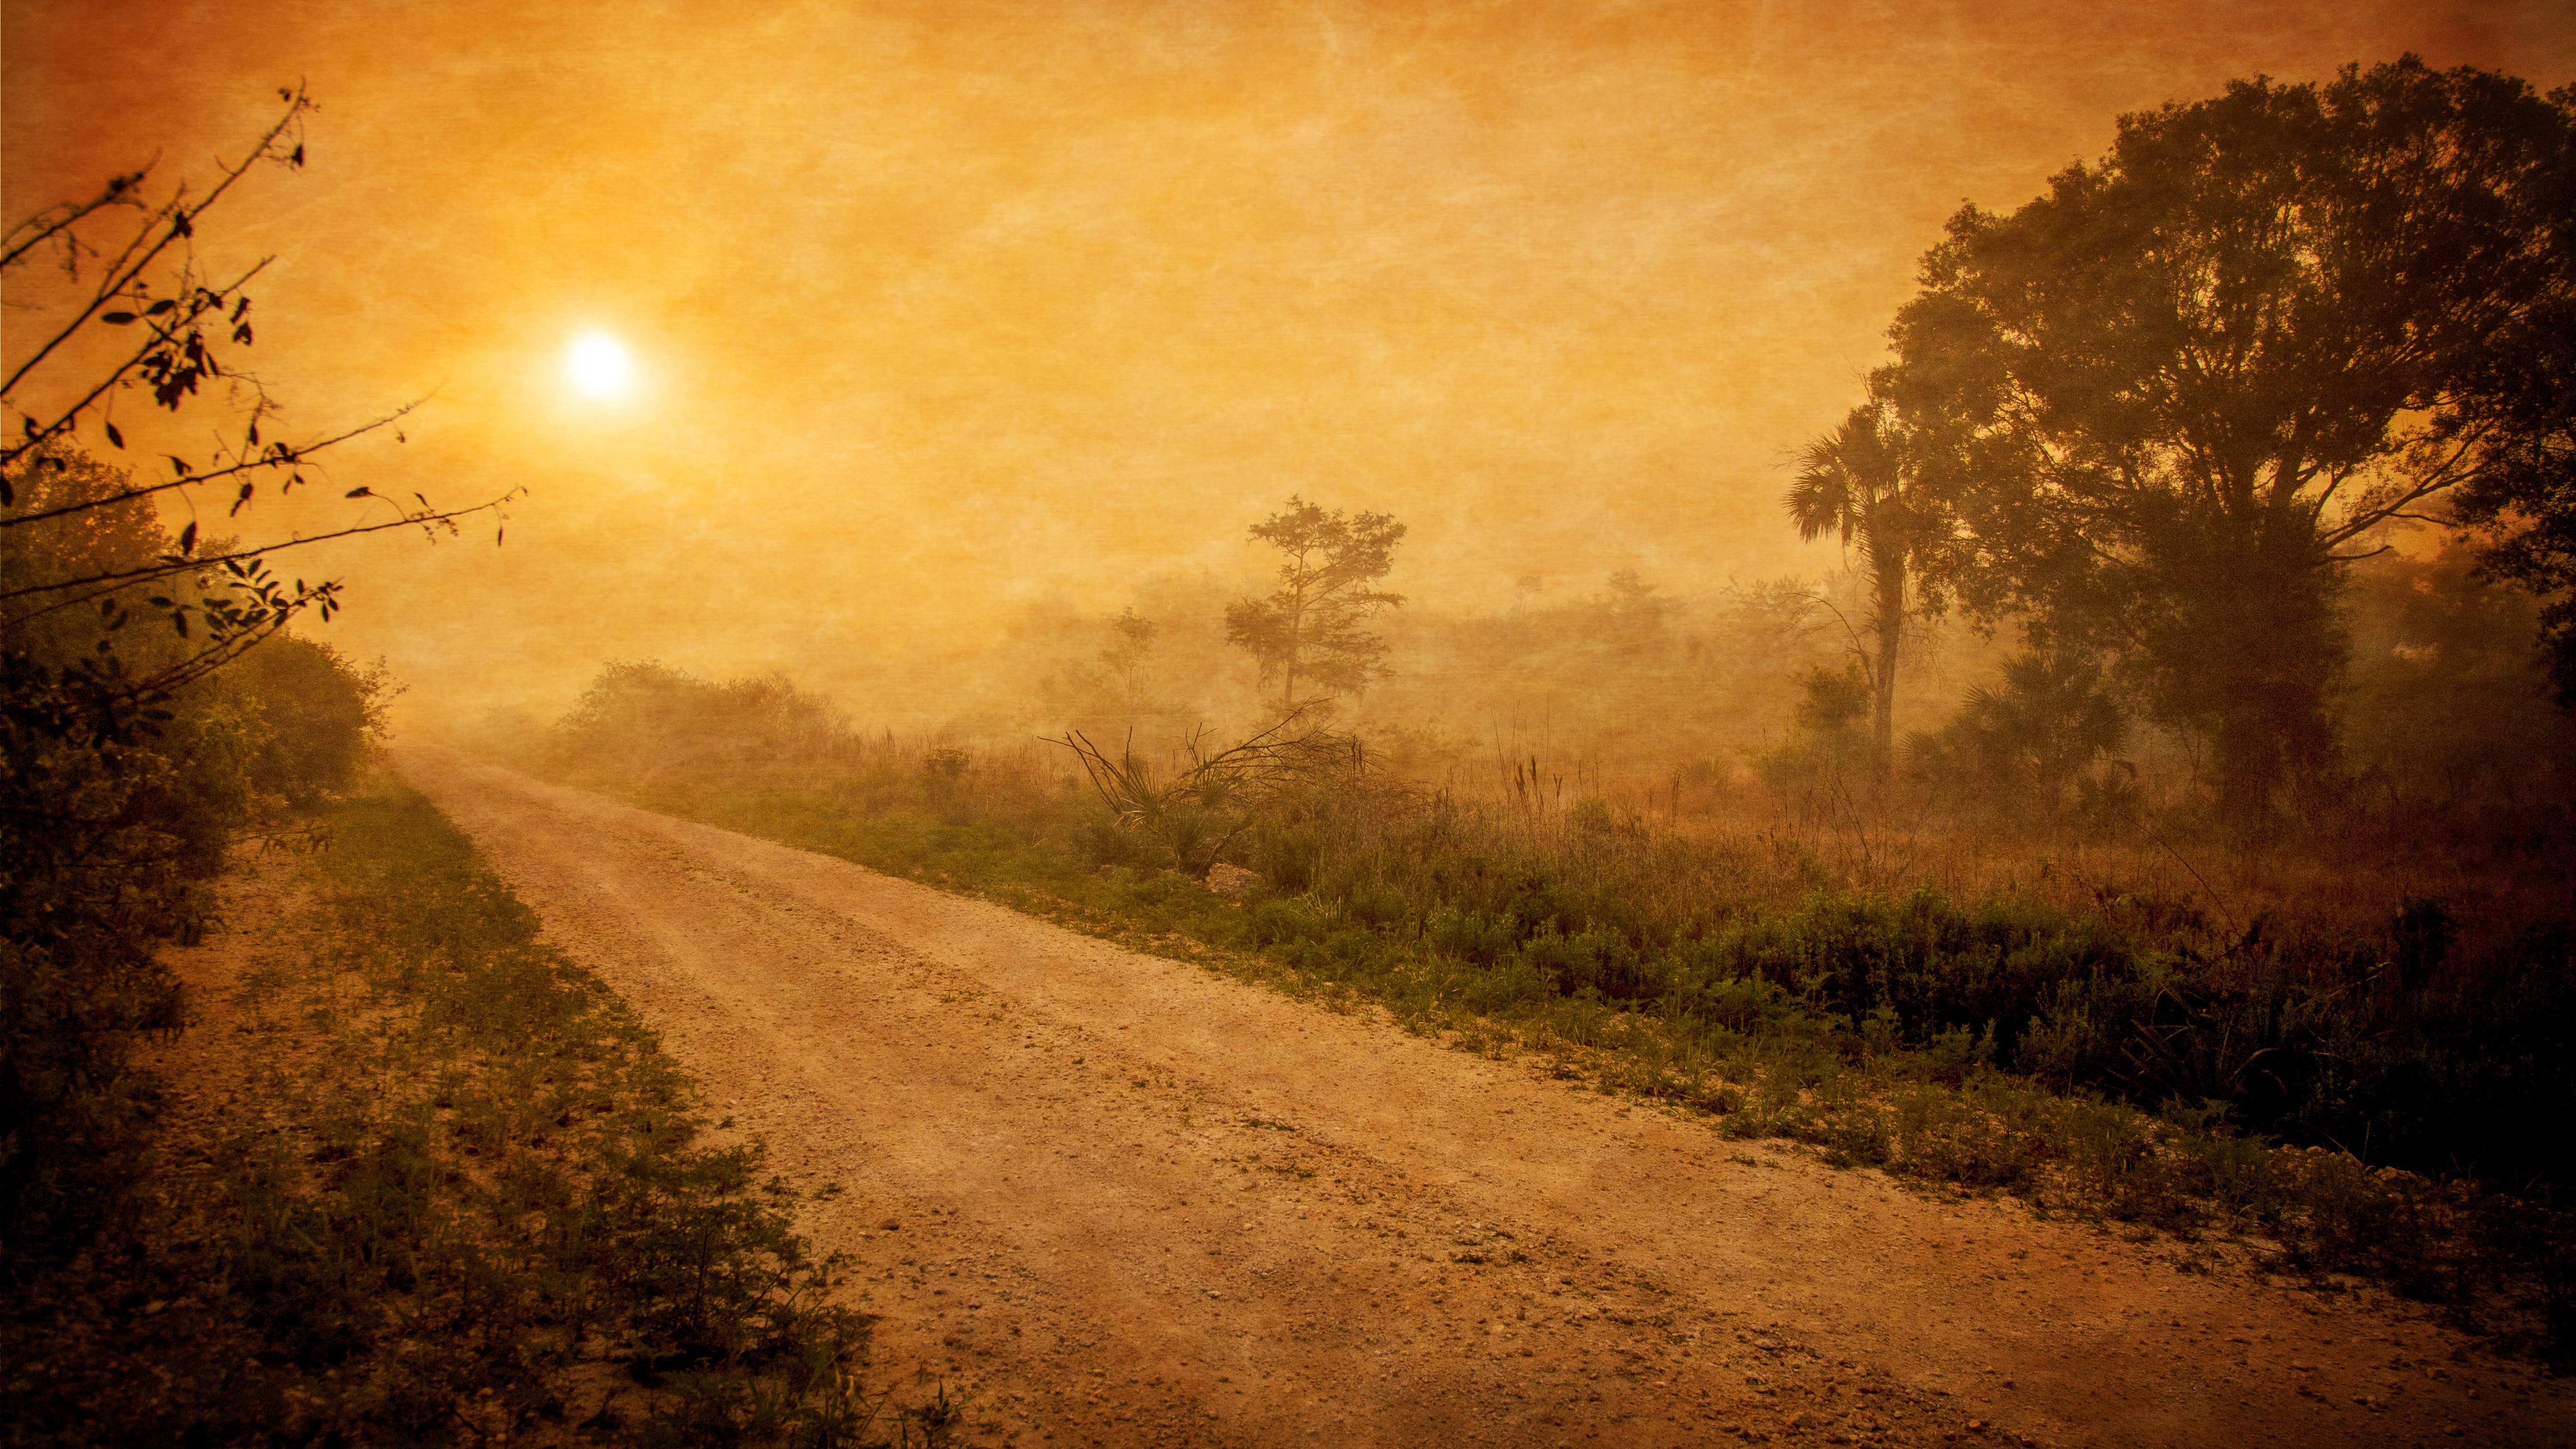 sepia photography of dirt road